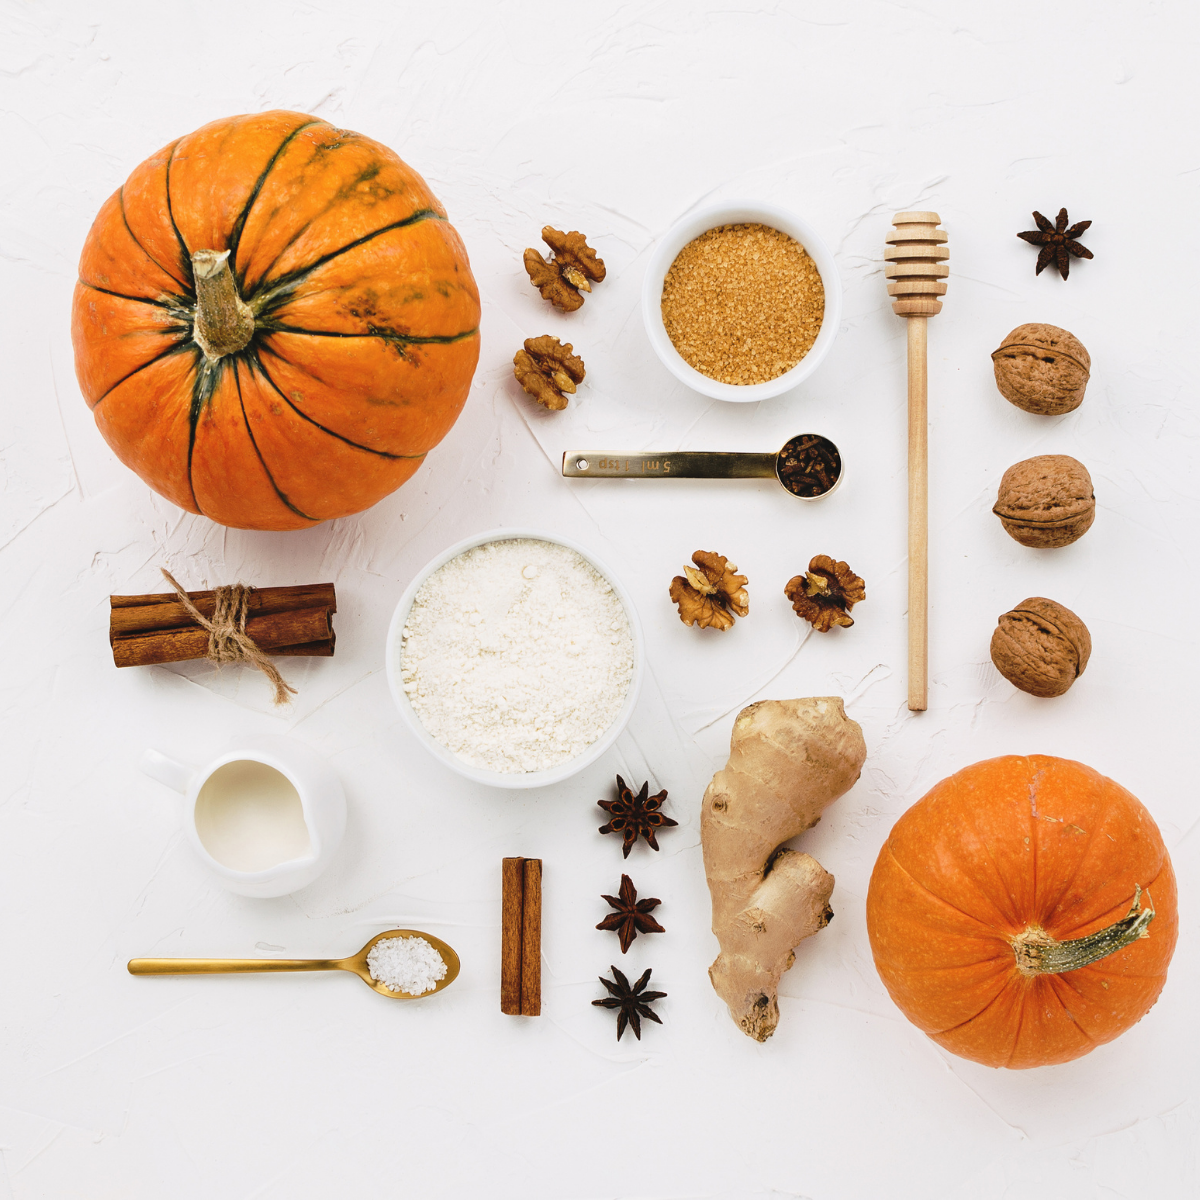 Make your own Pumpkin Spice Blend! Check out this recipe from Boston's Espresso Dave Coffee Catering!